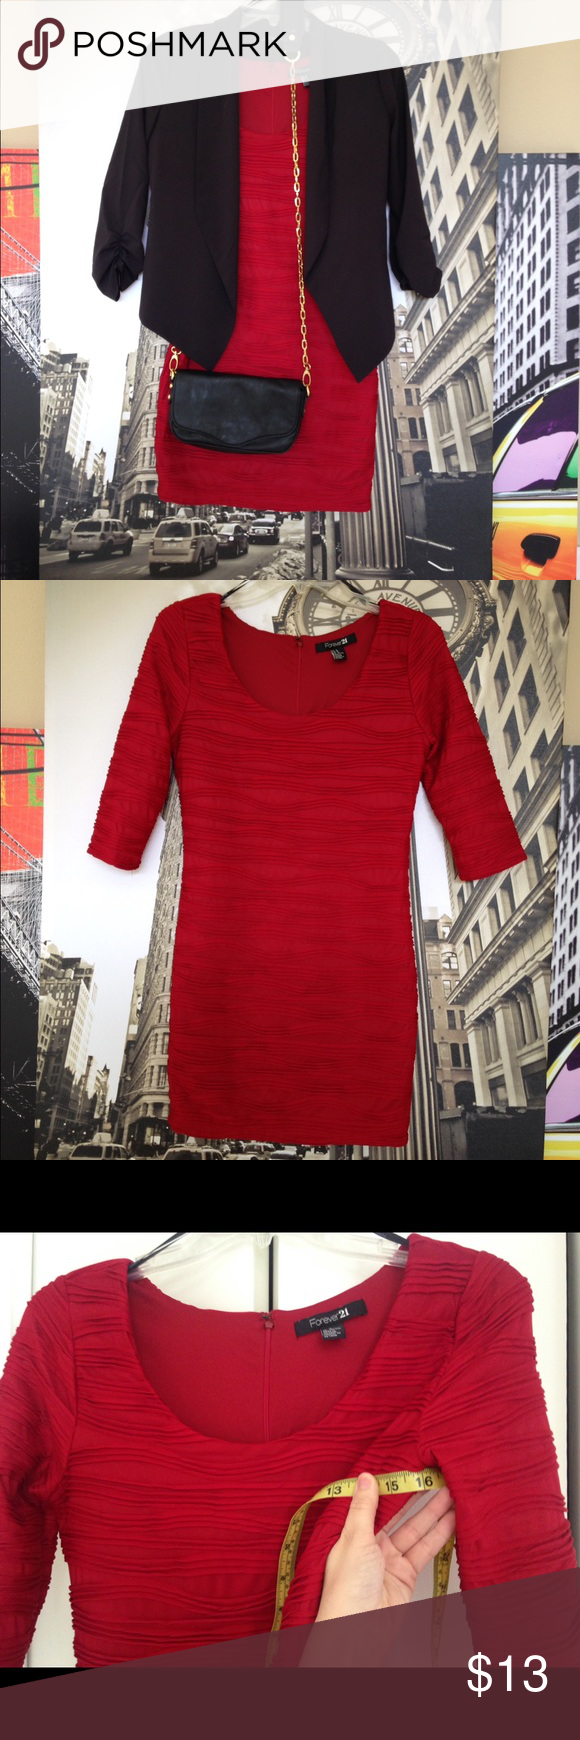 Forever 21 dress size medium sexy red mini small Forever 21 size medium (runs small) super sexy hot red mini dress. Nice raised texture! Zips in back. Jacket and purse not included.       Length: 32 inches Bust: 16 inches.              Great condition! May have been worn once. Forever 21 Dresses Mini